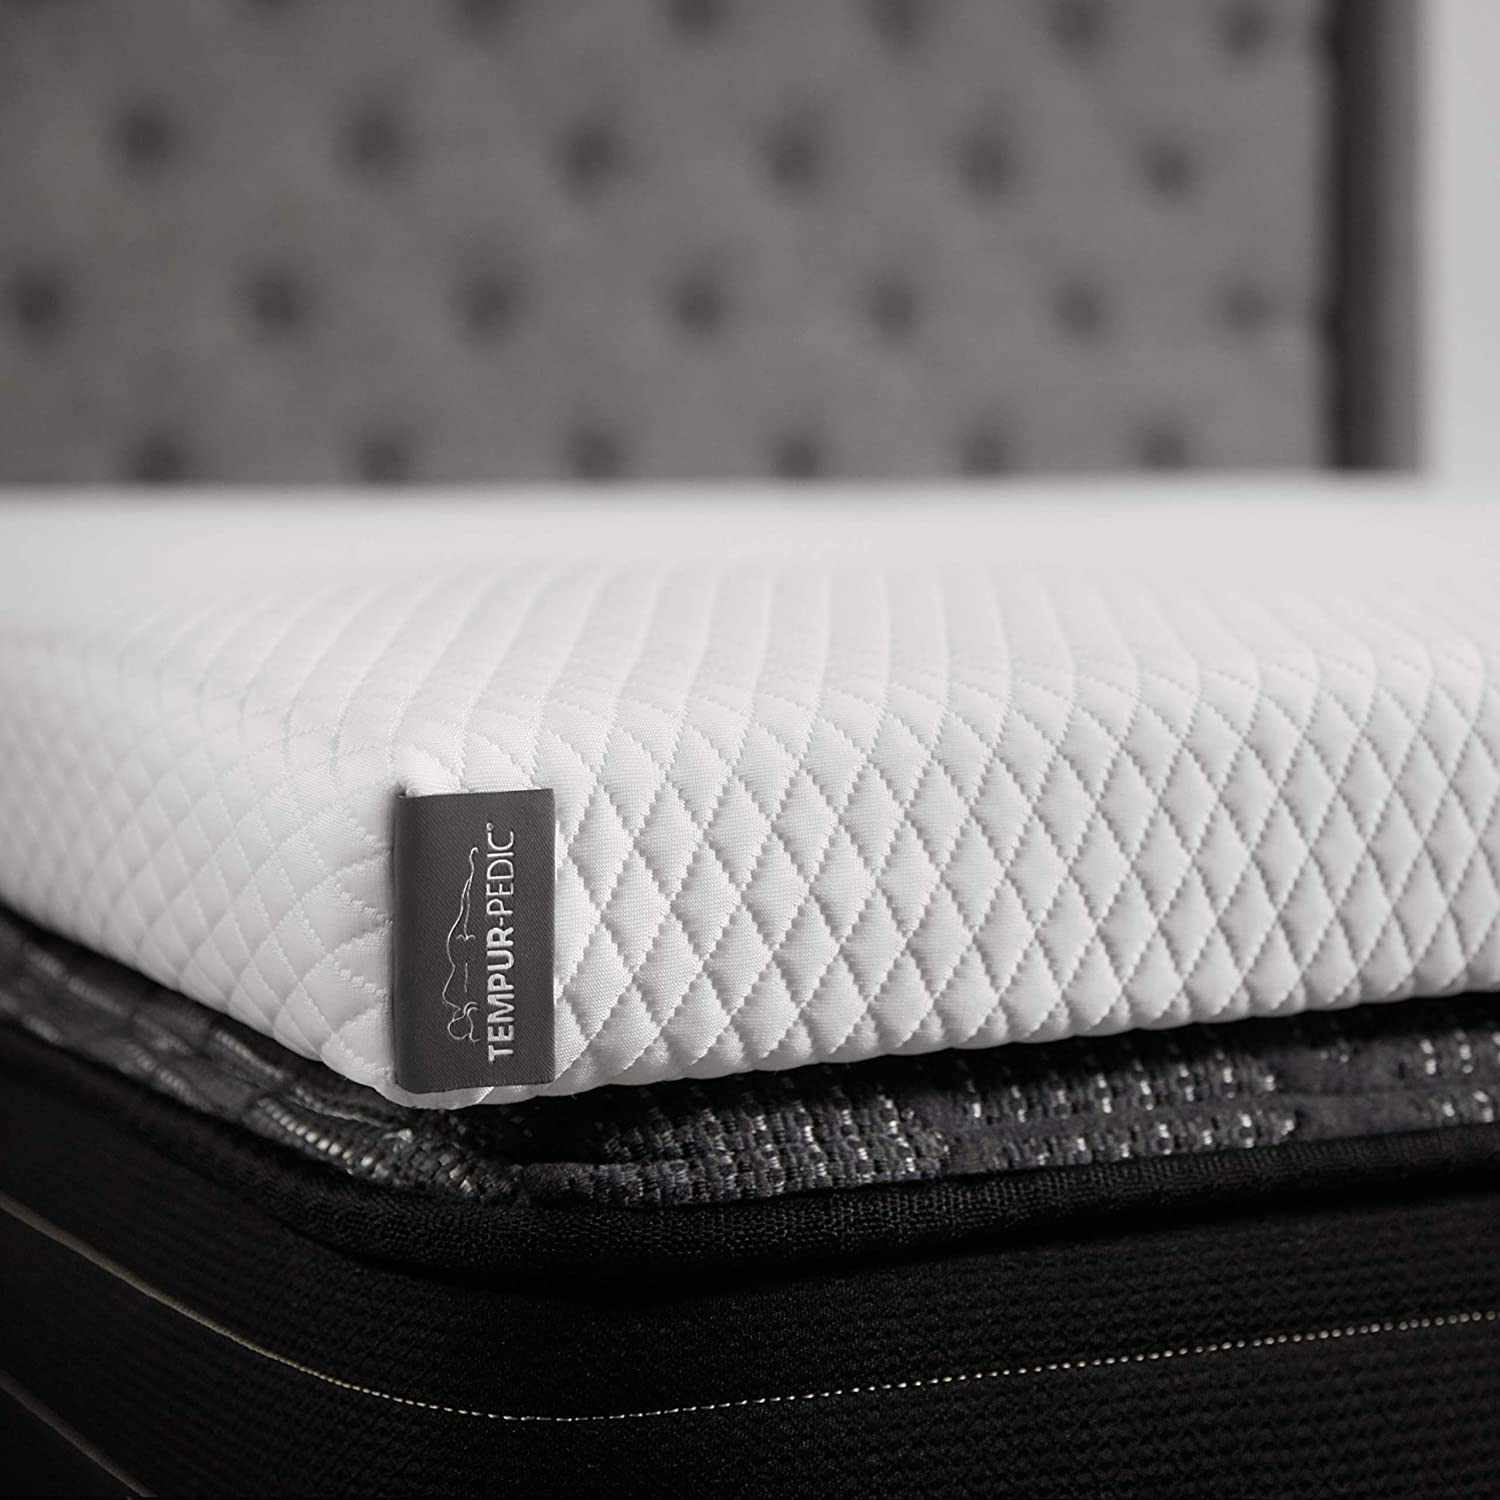 TEMPUR-Adapt + Cooling 3-Inch Full Mattress Topper, Soft Luxury Premium Foam, Washable Cover